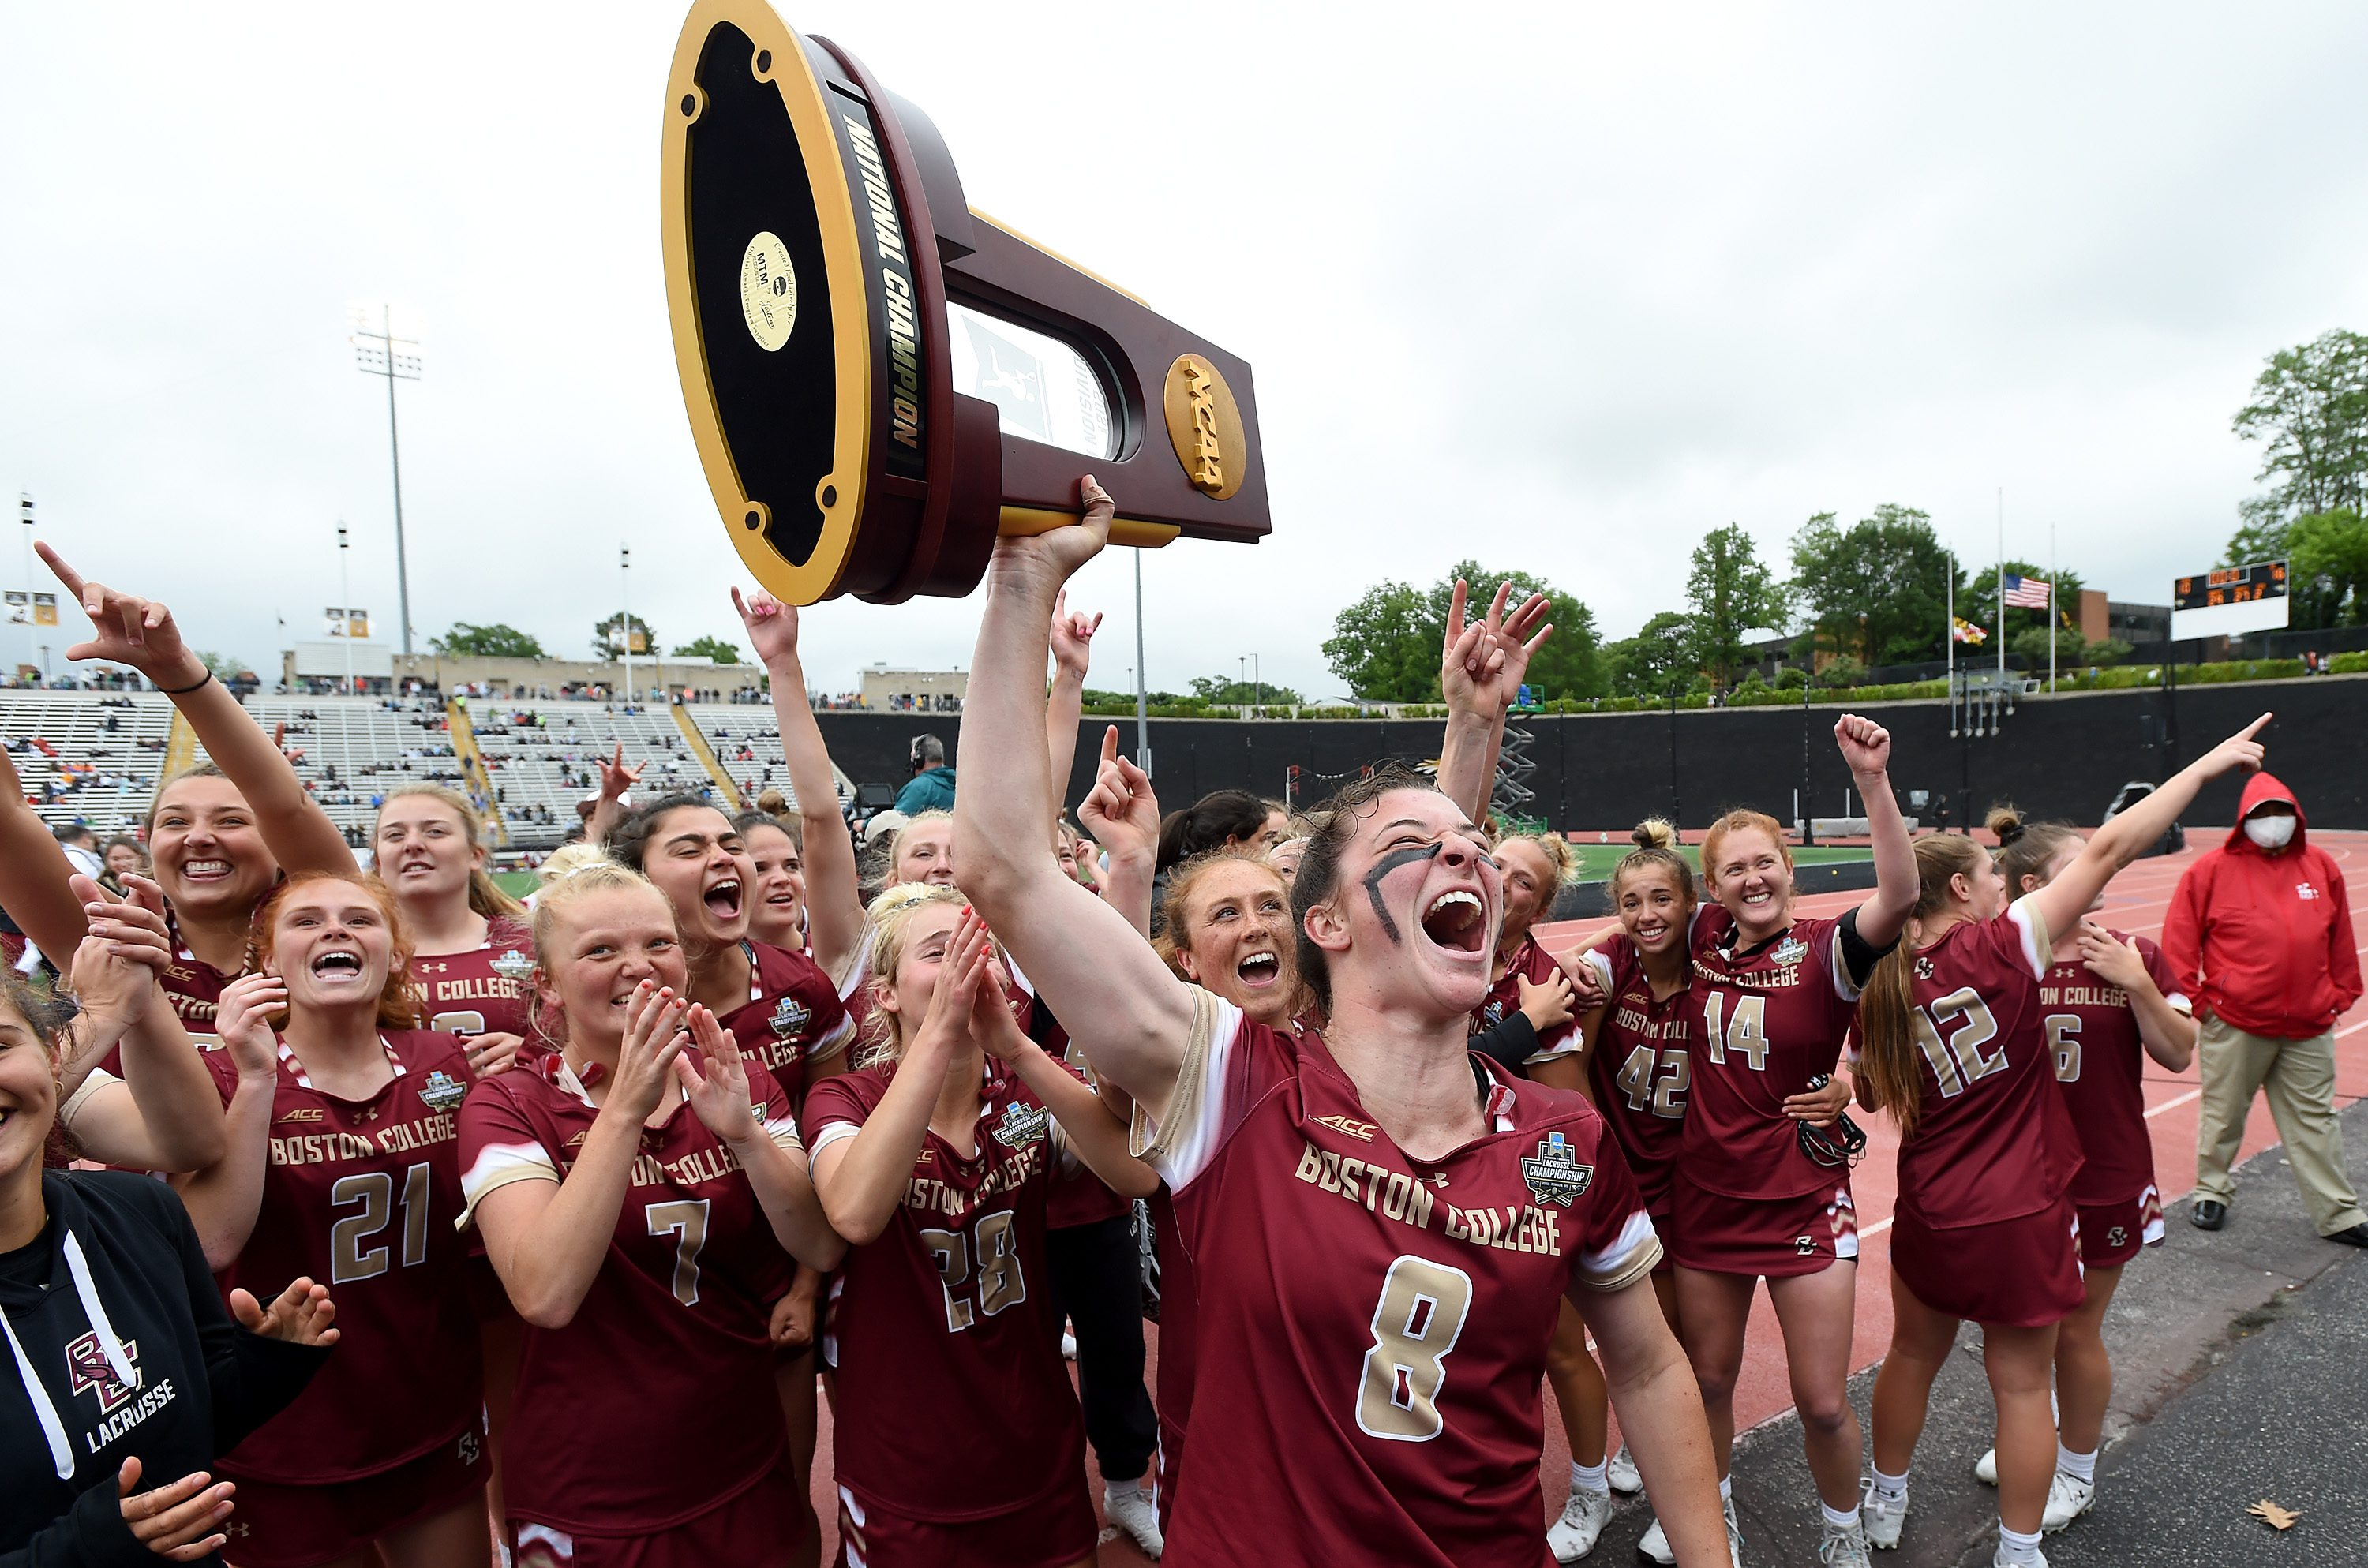 #8 Charlotte North and Boston College team celebrate winning 2021 NCAA Women's Lacrosse Championship raising the NCAA National Champions trophy n the air to share with fans